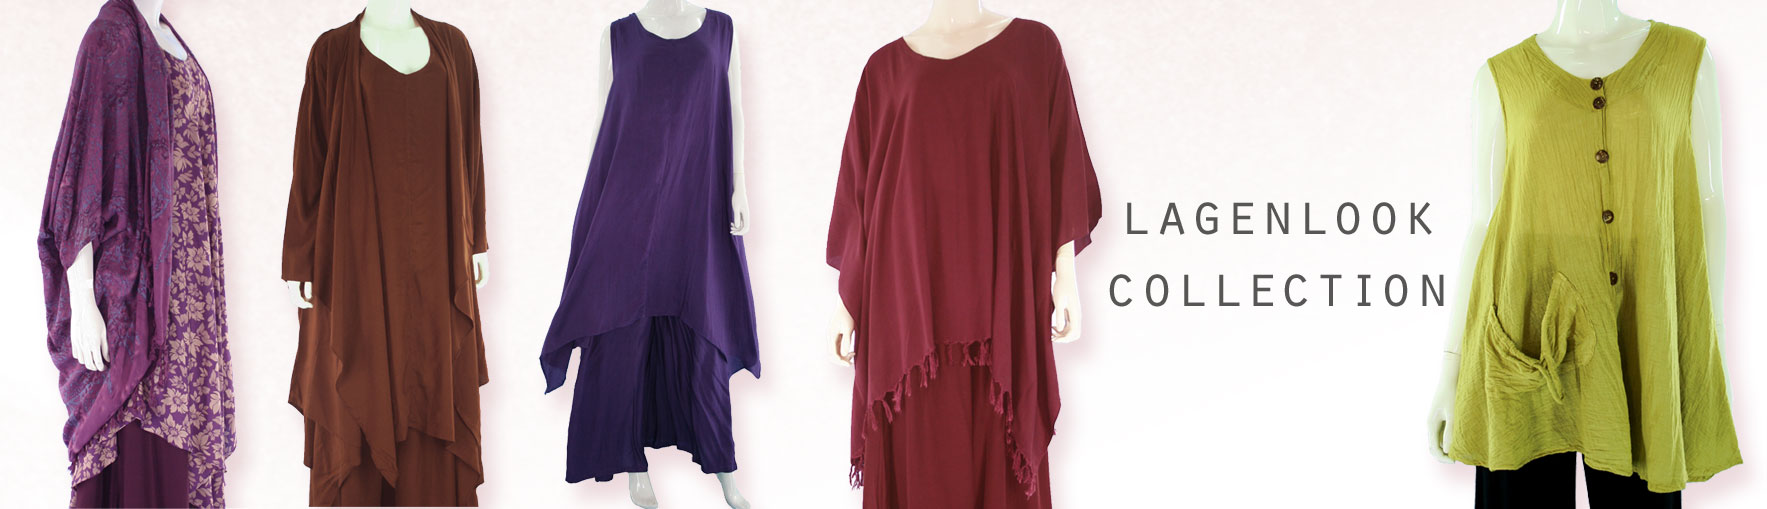 Find your perfect lagenlook dress & lagenlook layer clothing